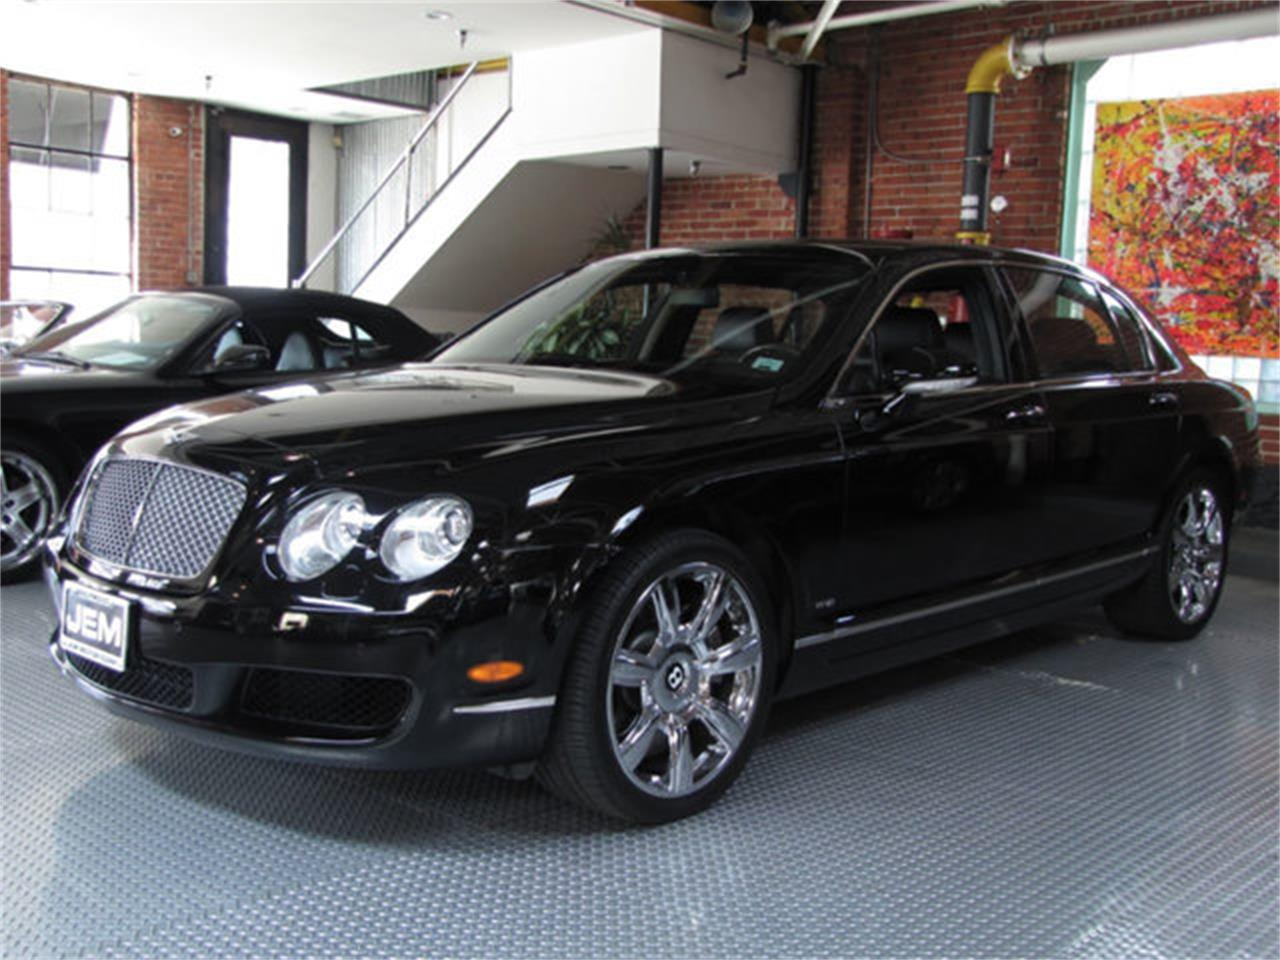 2006 Bentley Continental Flying Spur for sale in Hollywood, CA